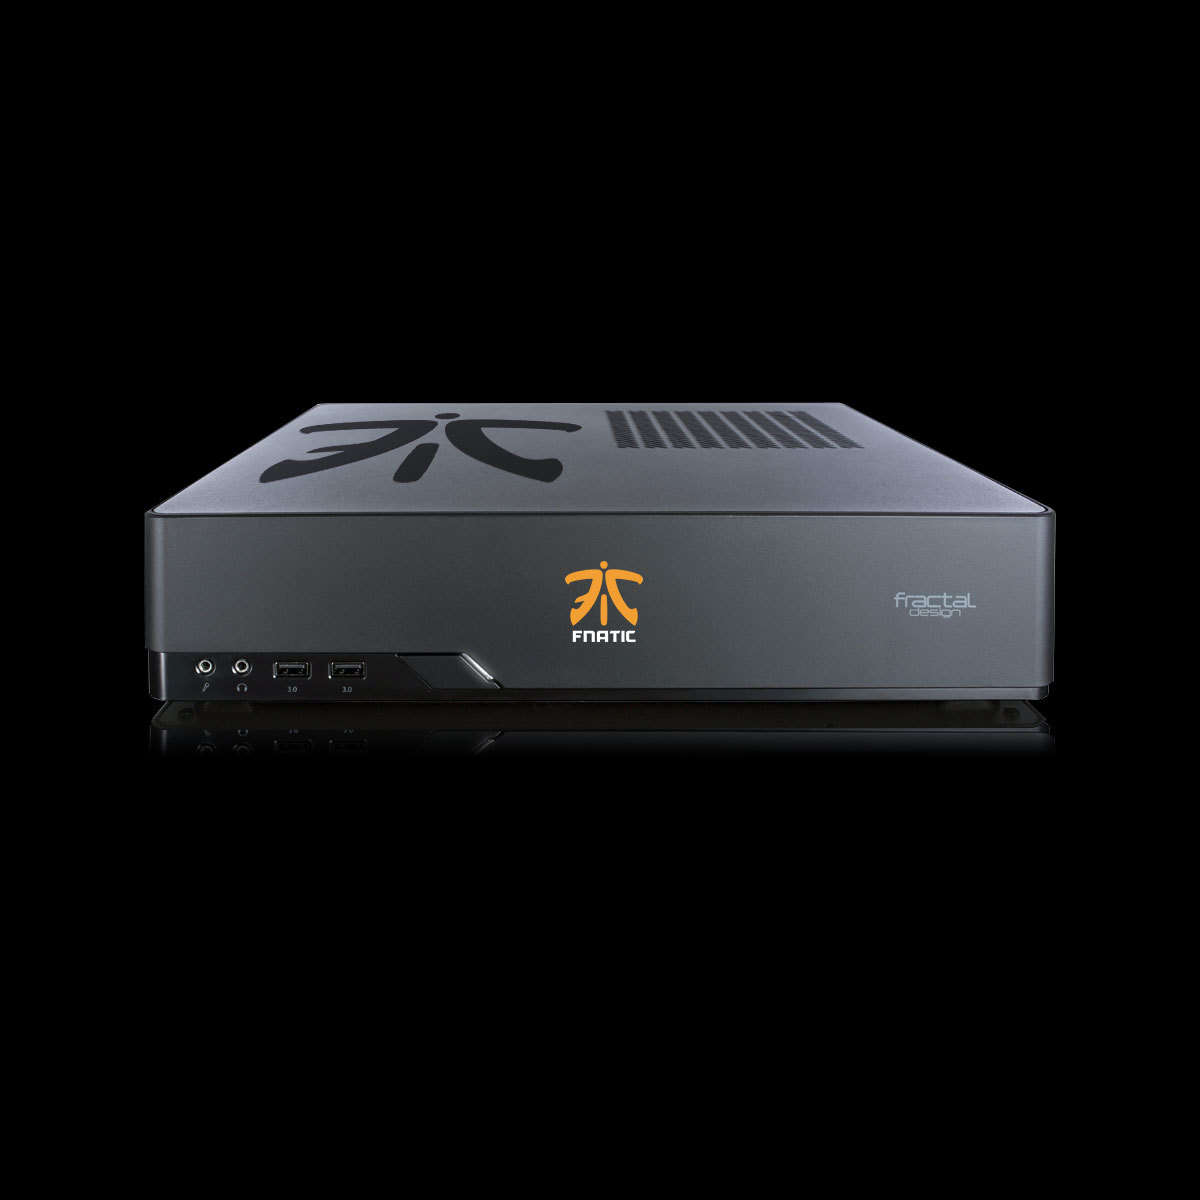 Chillblast Fnatic RX 460 Games Console